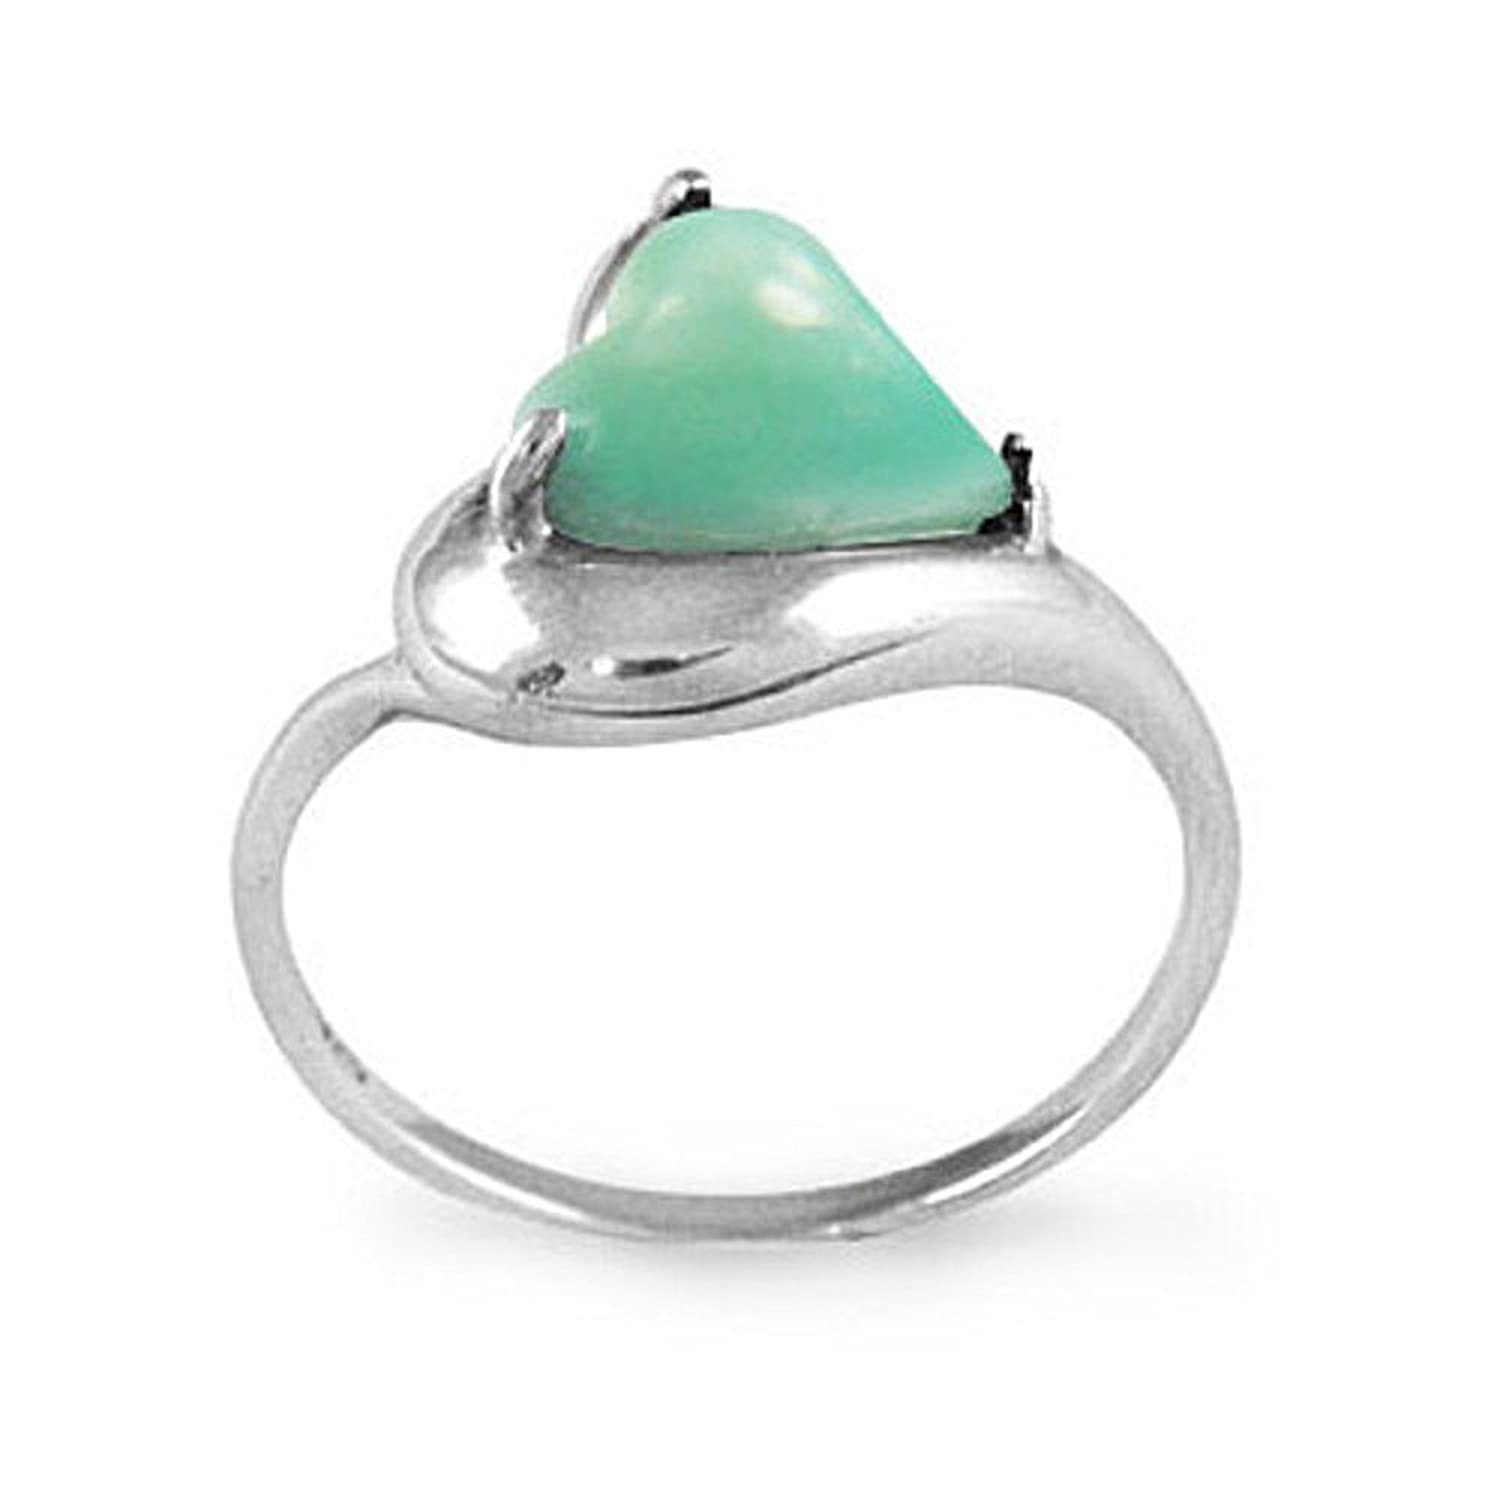 Sterling Silver Ring with Heart Shape Light-Green Chrysoprase Stone